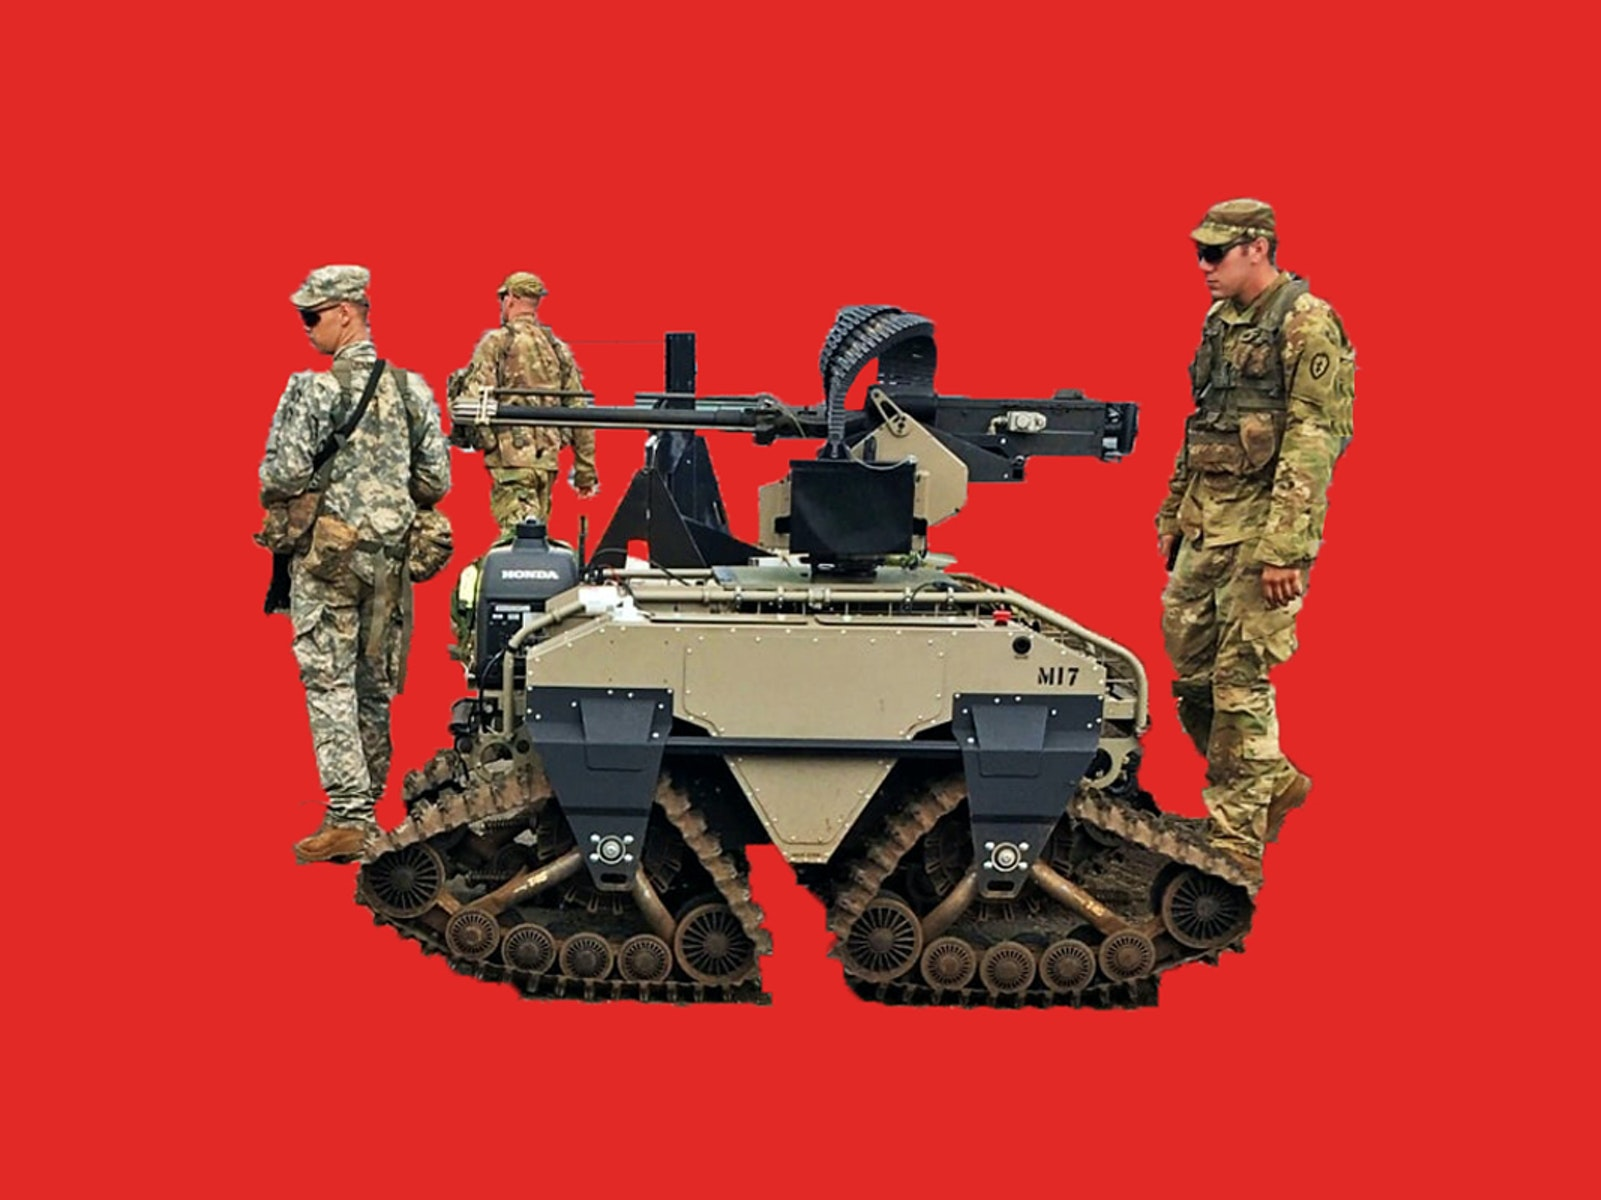 Soldiers of the 25th Infantry Division stand near a multipurpose  unmanned tactical transport (MUTT) armed with an M2 .50 caliber machine  gun during the Pacific Manned Unmanned - Initiative (PACMAN-I) at Marine  Corps Training Area - Bellows, July 22, 2016. Manned-Unmanned Teaming  is one of many new concepts that has been identified as part of the Army  Warfighter Assessment 2017 (AWA 17). AWA is the U.S. Army Training and  Doctrine Command's (TRADOC's) premier event to evaluate concepts and  capabilities that address the Army's warfighting challenges and shape  the future Army's force. The U.S. Army Tank Automotive Research,  Development and Engineering Center (TARDEC) is the Army's front line in  bringing capabilities in the form of MUM-T to that force. (Photo by  Kimberly Bratic, TARDEC Public Affairs) Photo illustration by Inverse